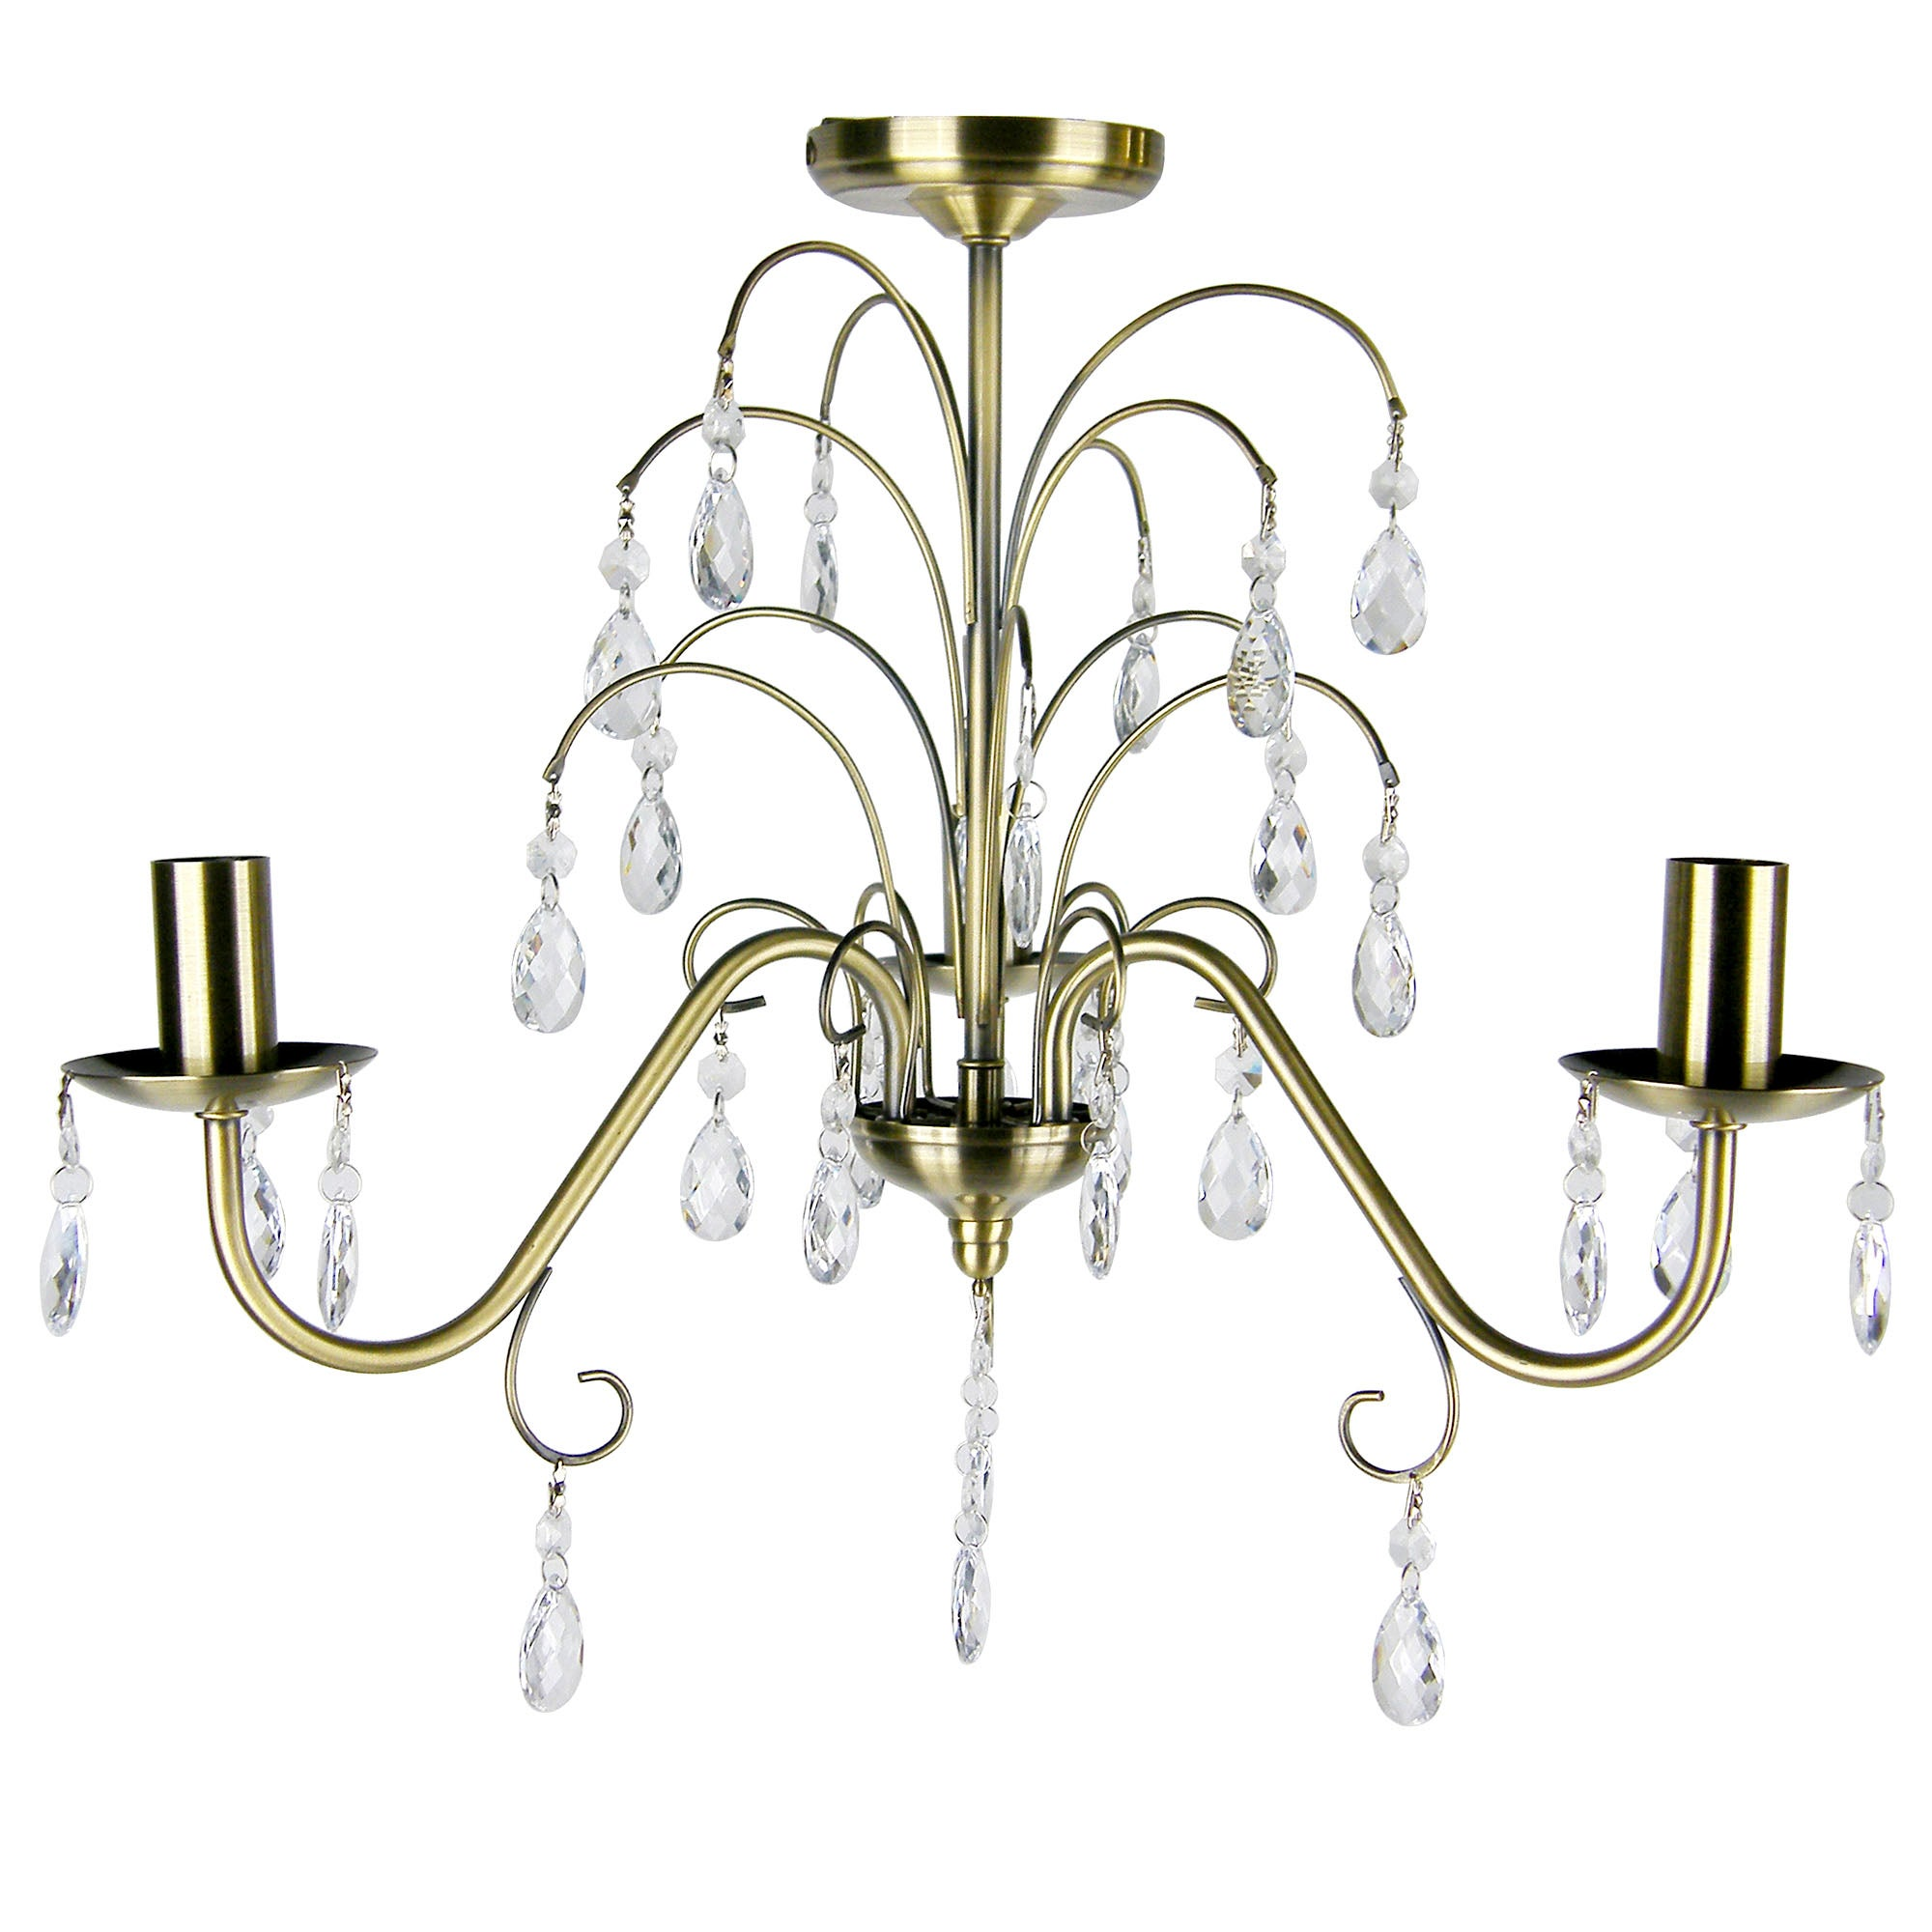 Maddison 3 Light Fitting